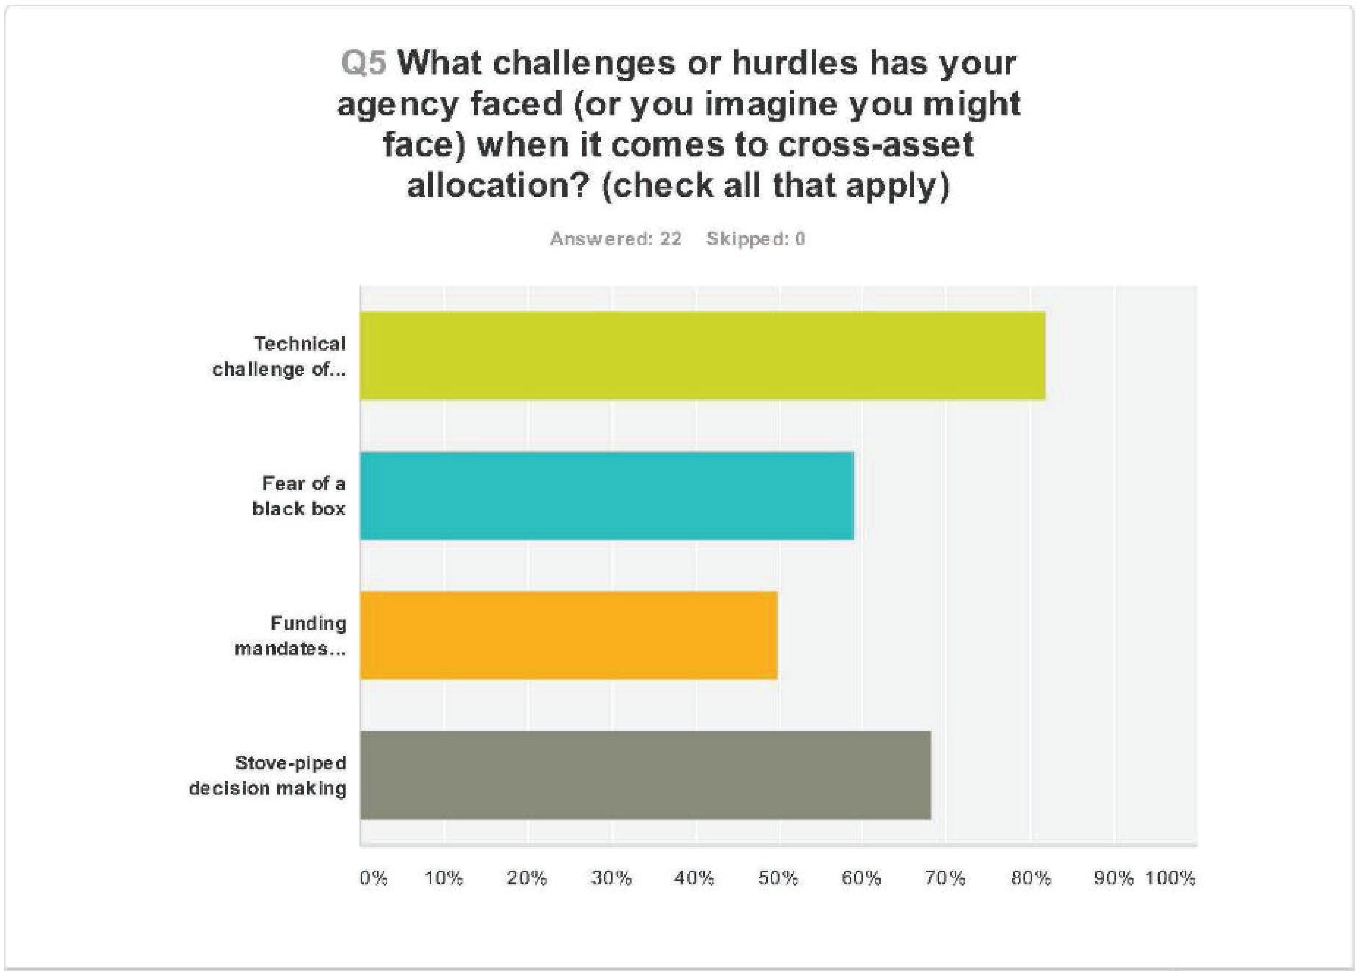 Question 5: what challenges or hurdles has your agency faced (or you imagine might face) when it comes to cross-asset allocation? Check all that apply. 80% responded technical challenge, 60% responded fear of a black box, 50% responded funding mandates, and almost 70% responded stove-piped decision-making.